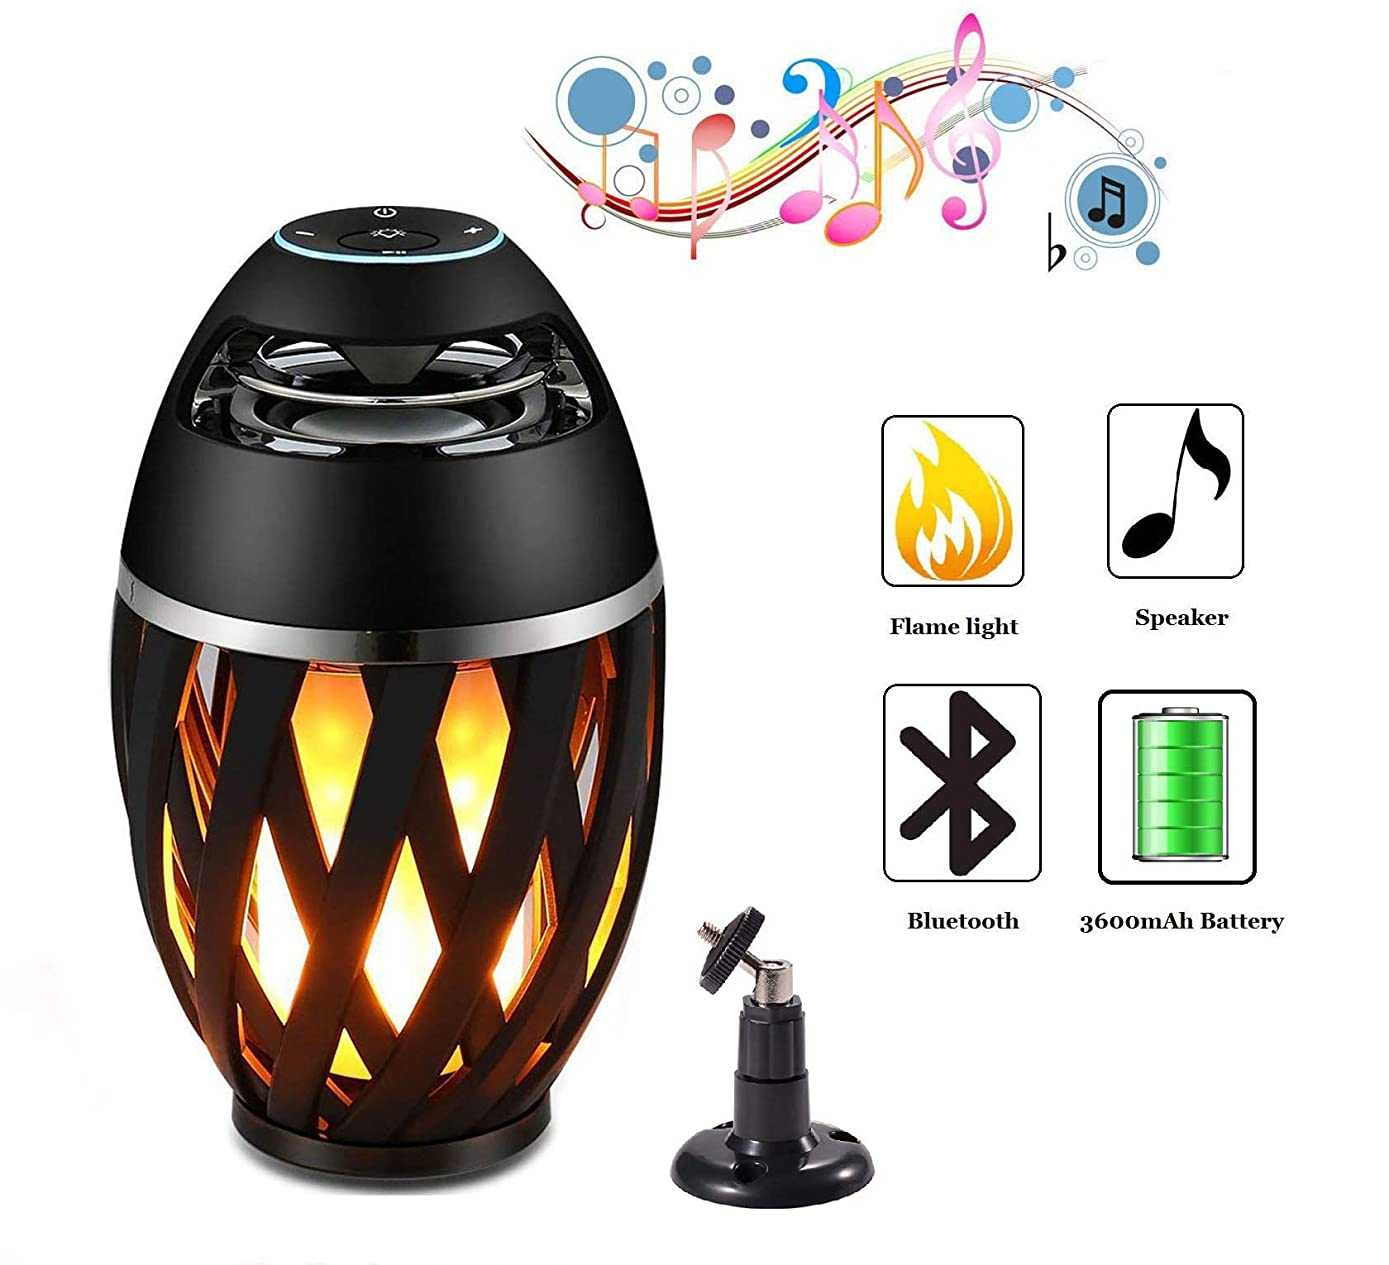 Legazone Flame Atmosphere Speakers, Table Lamp Bluetooth Night Light Outdoor/Indoor Portable Stereo Bluetooth Speaker,96 LED Beads,Dancing Flicker Flame Camping Lamp Portable Wireless Speaker